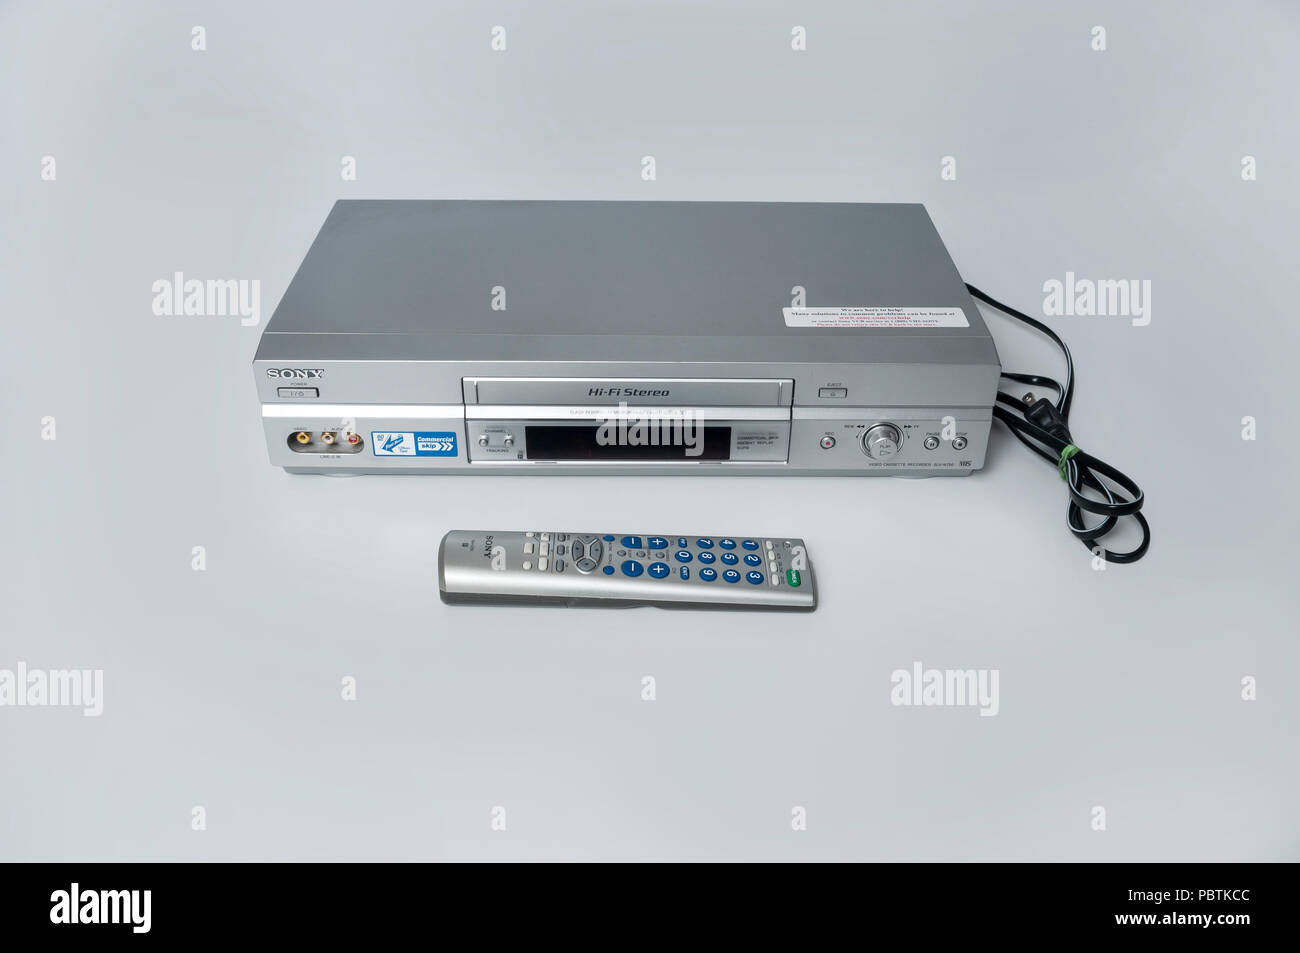 A Sony VHS Video Cassette Recorder or VCR - Stock Image